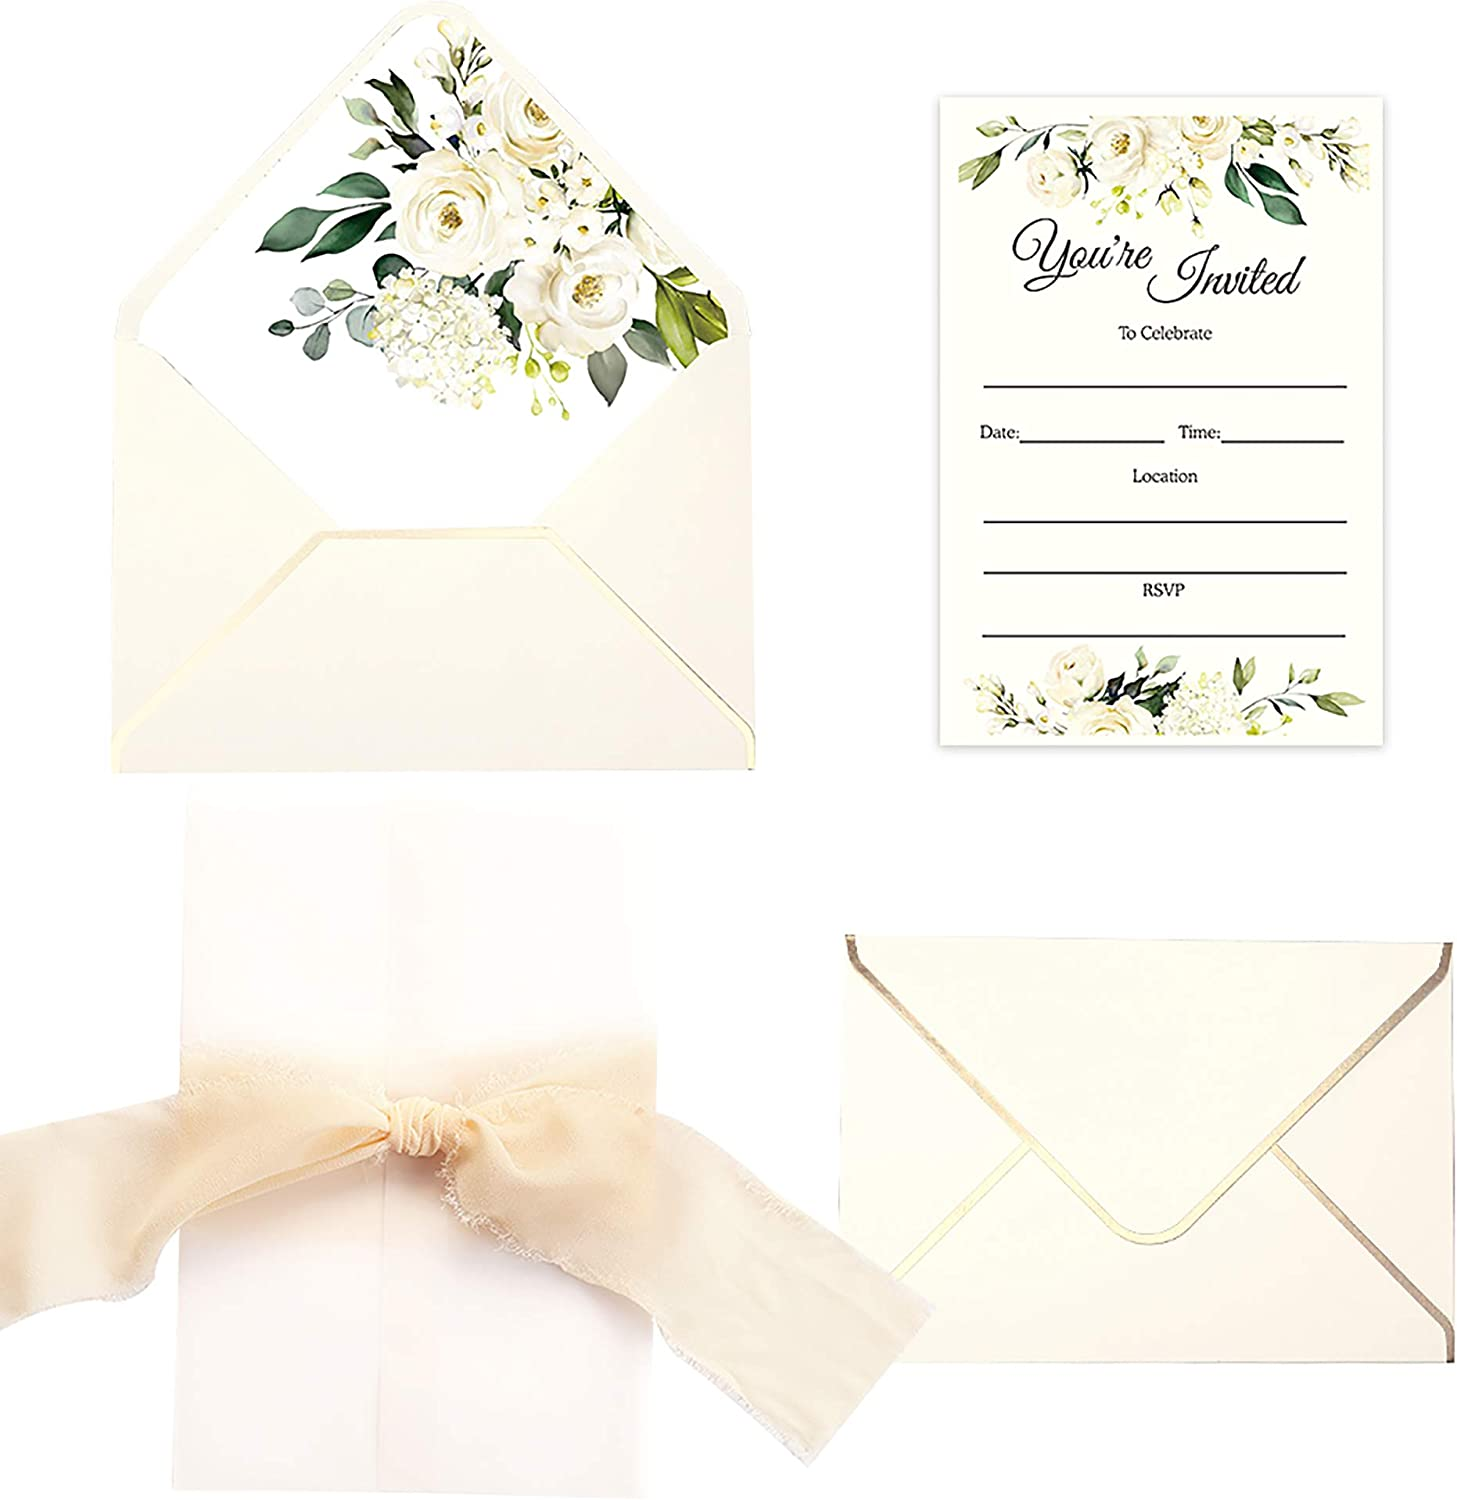 Doris Home 25pcs Fill in Invitations with White Rose Design, Cream Envelopes and Cream Ribbon for Wedding Bridal Shower Baby Shower Birthday Party